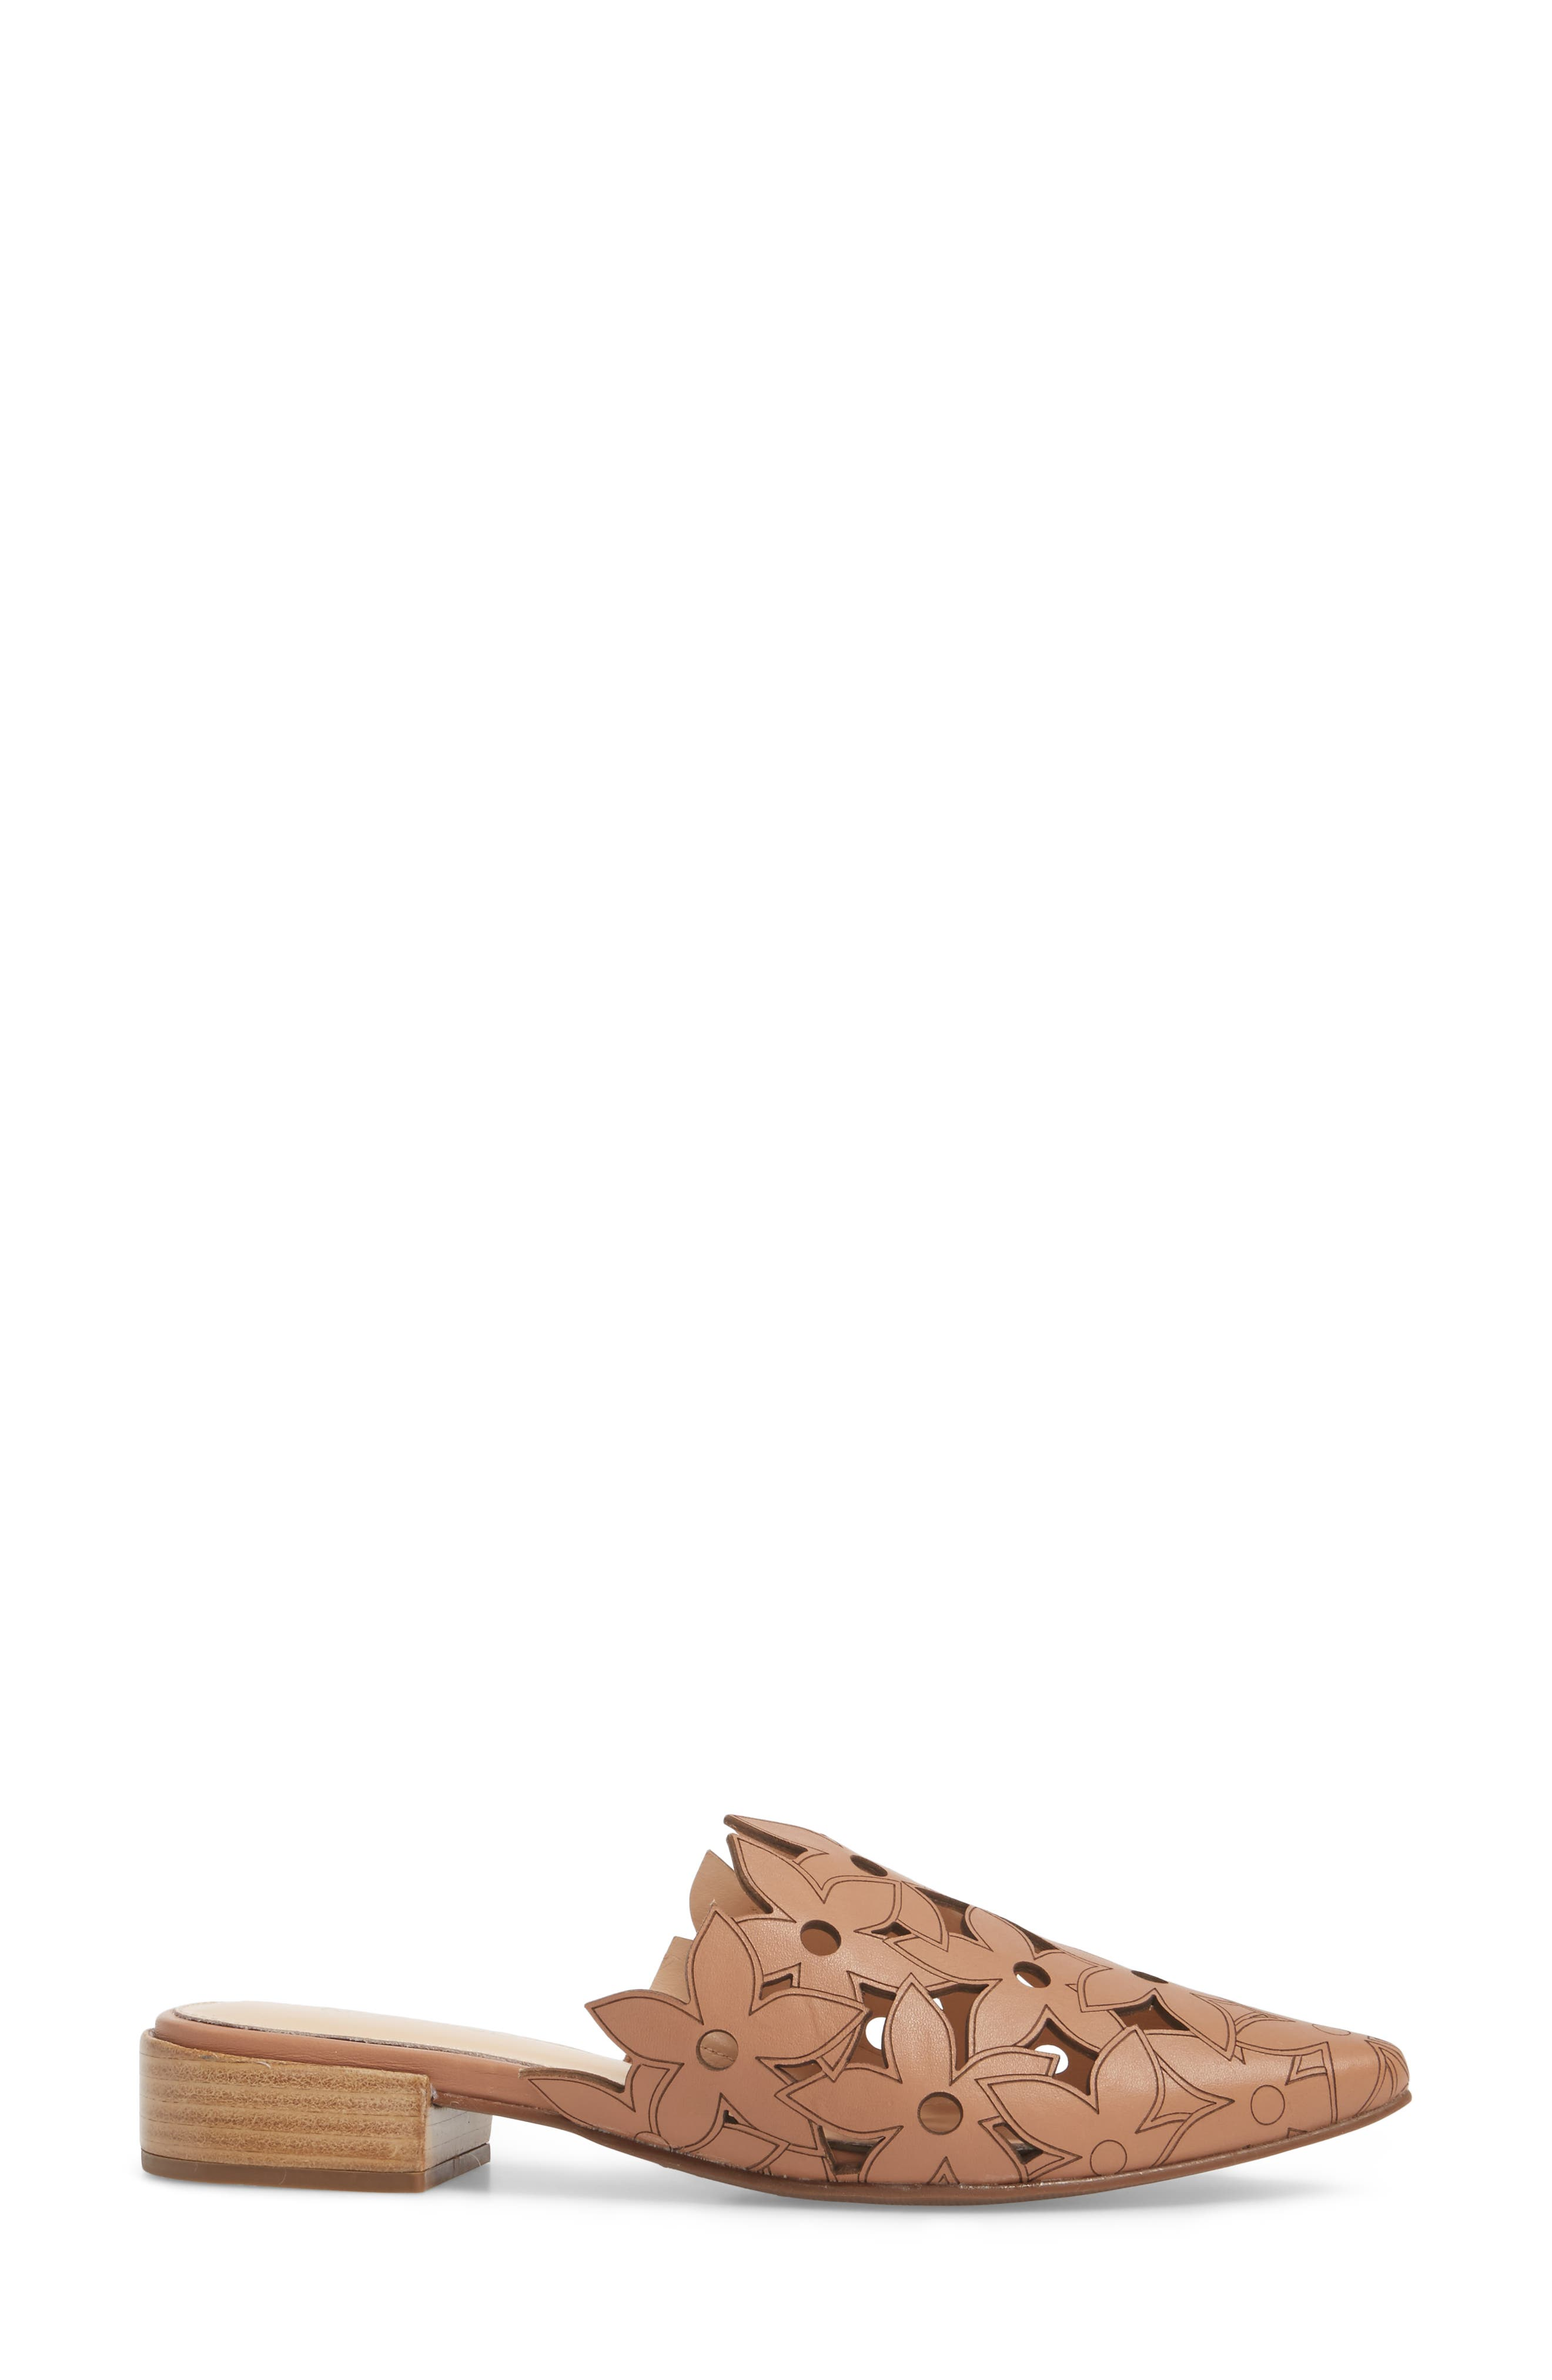 Gianni Mule,                             Alternate thumbnail 3, color,                             NUDE LEATHER